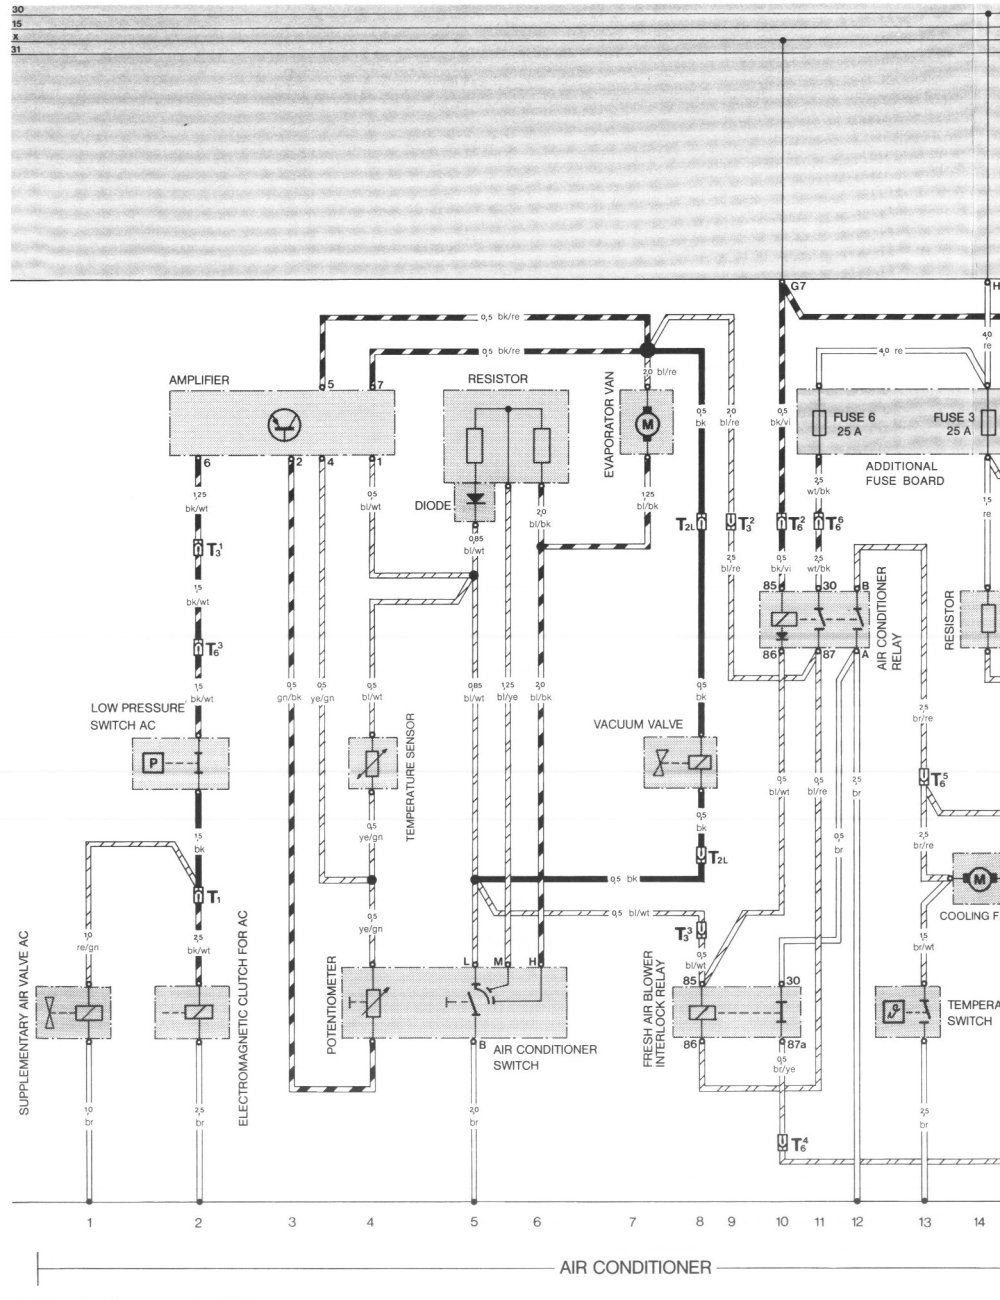 medium resolution of porsche wiring diagrams wiring diagram used how to read a porsche wiring diagram